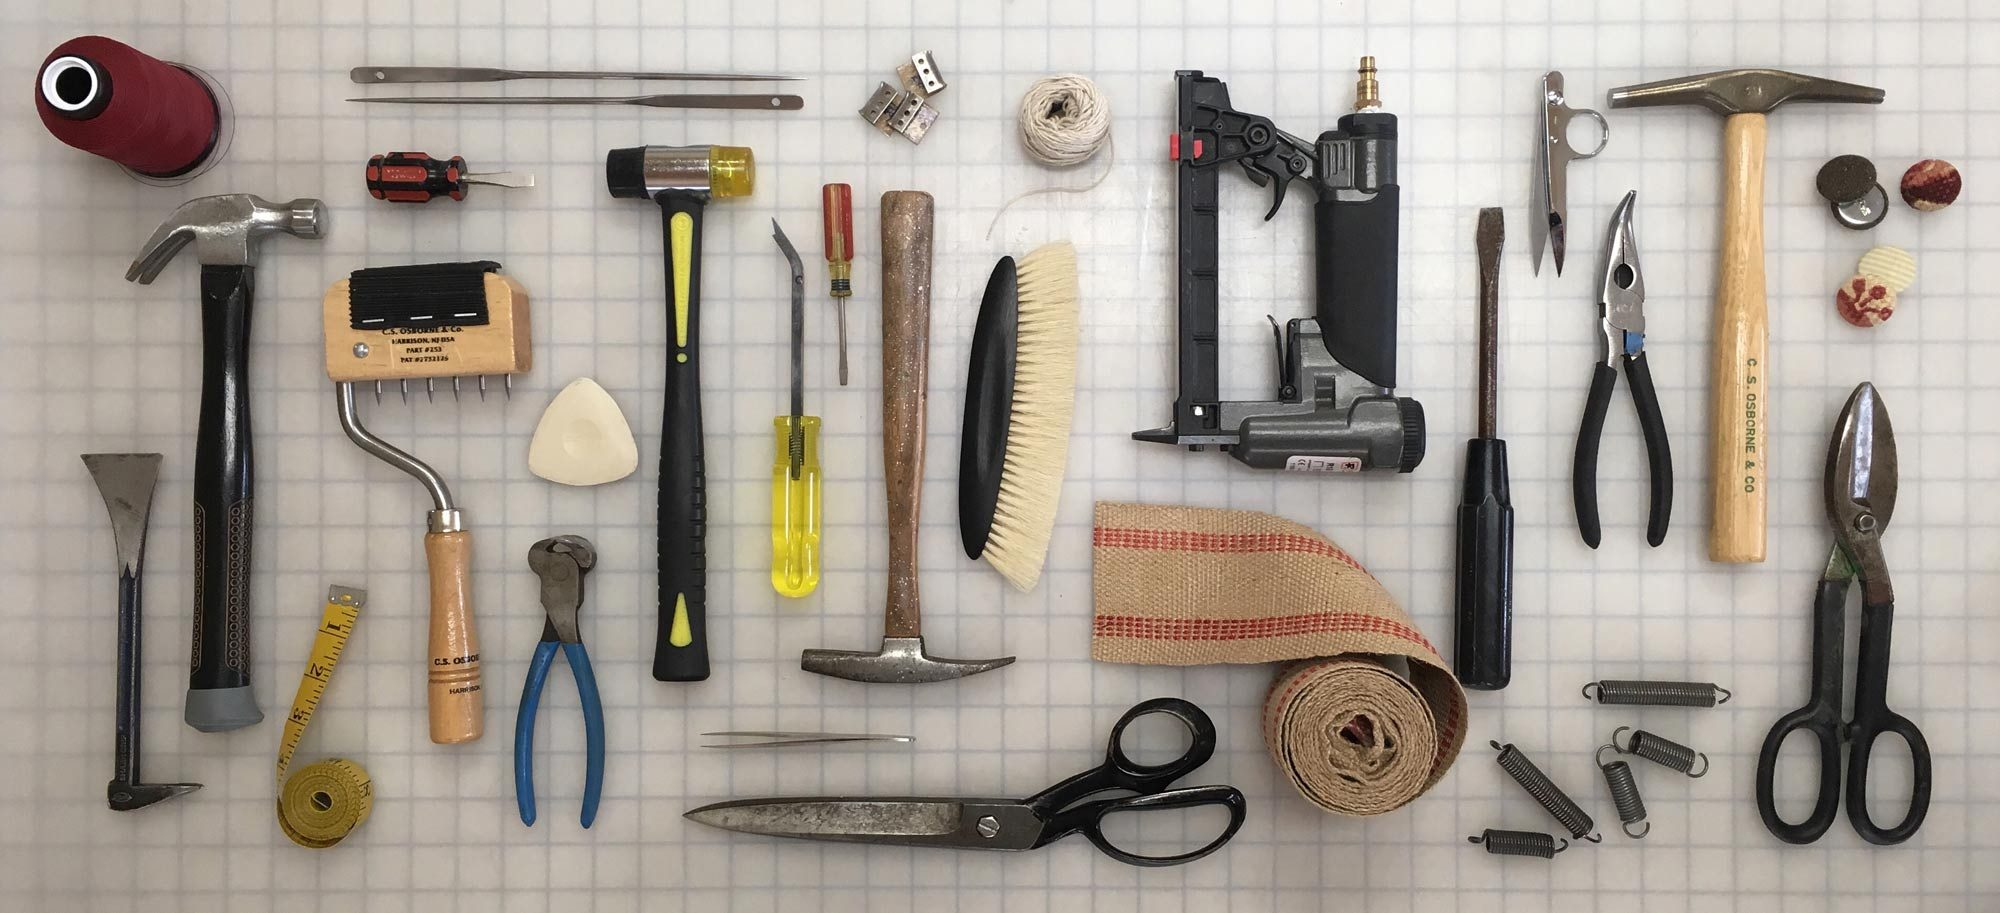 Upholstery tools - each tells its own story